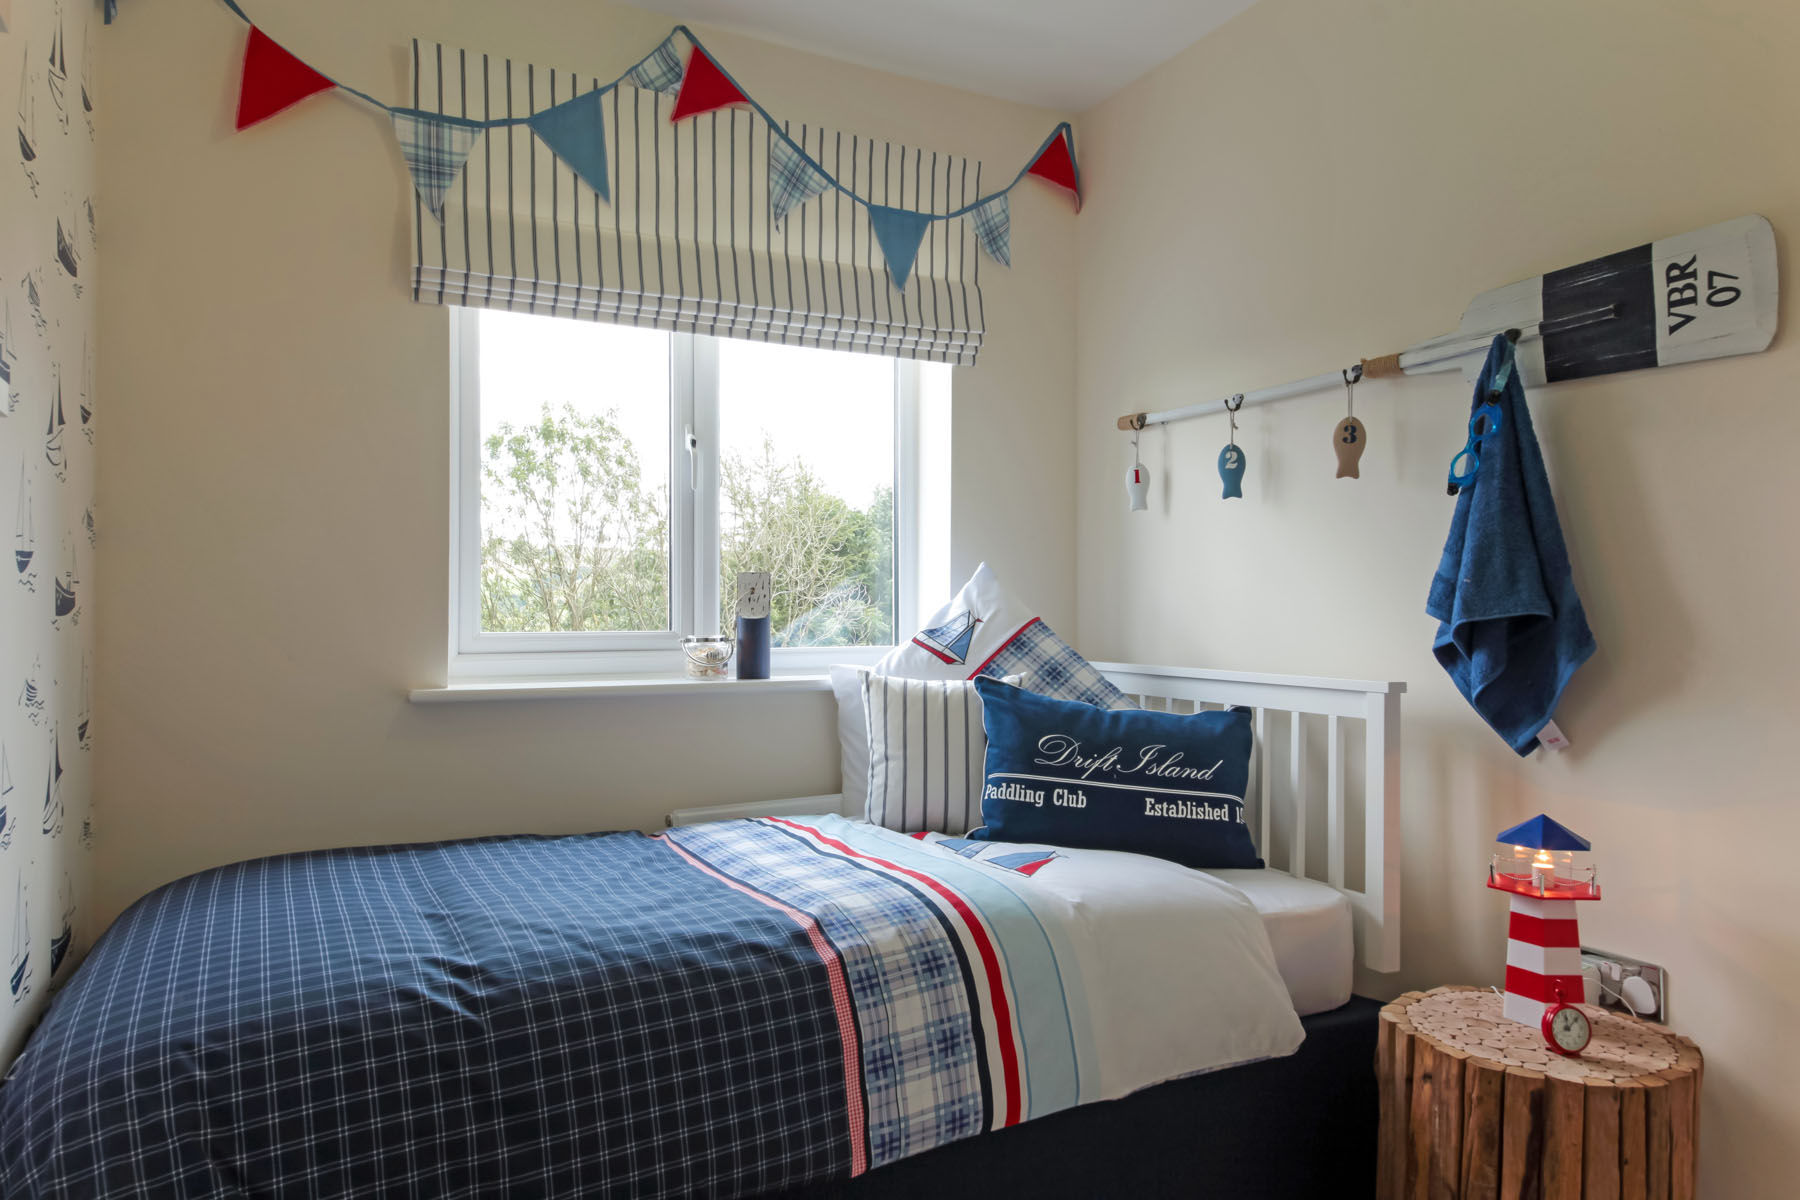 021_DMV_Lydford_Bedroom_3